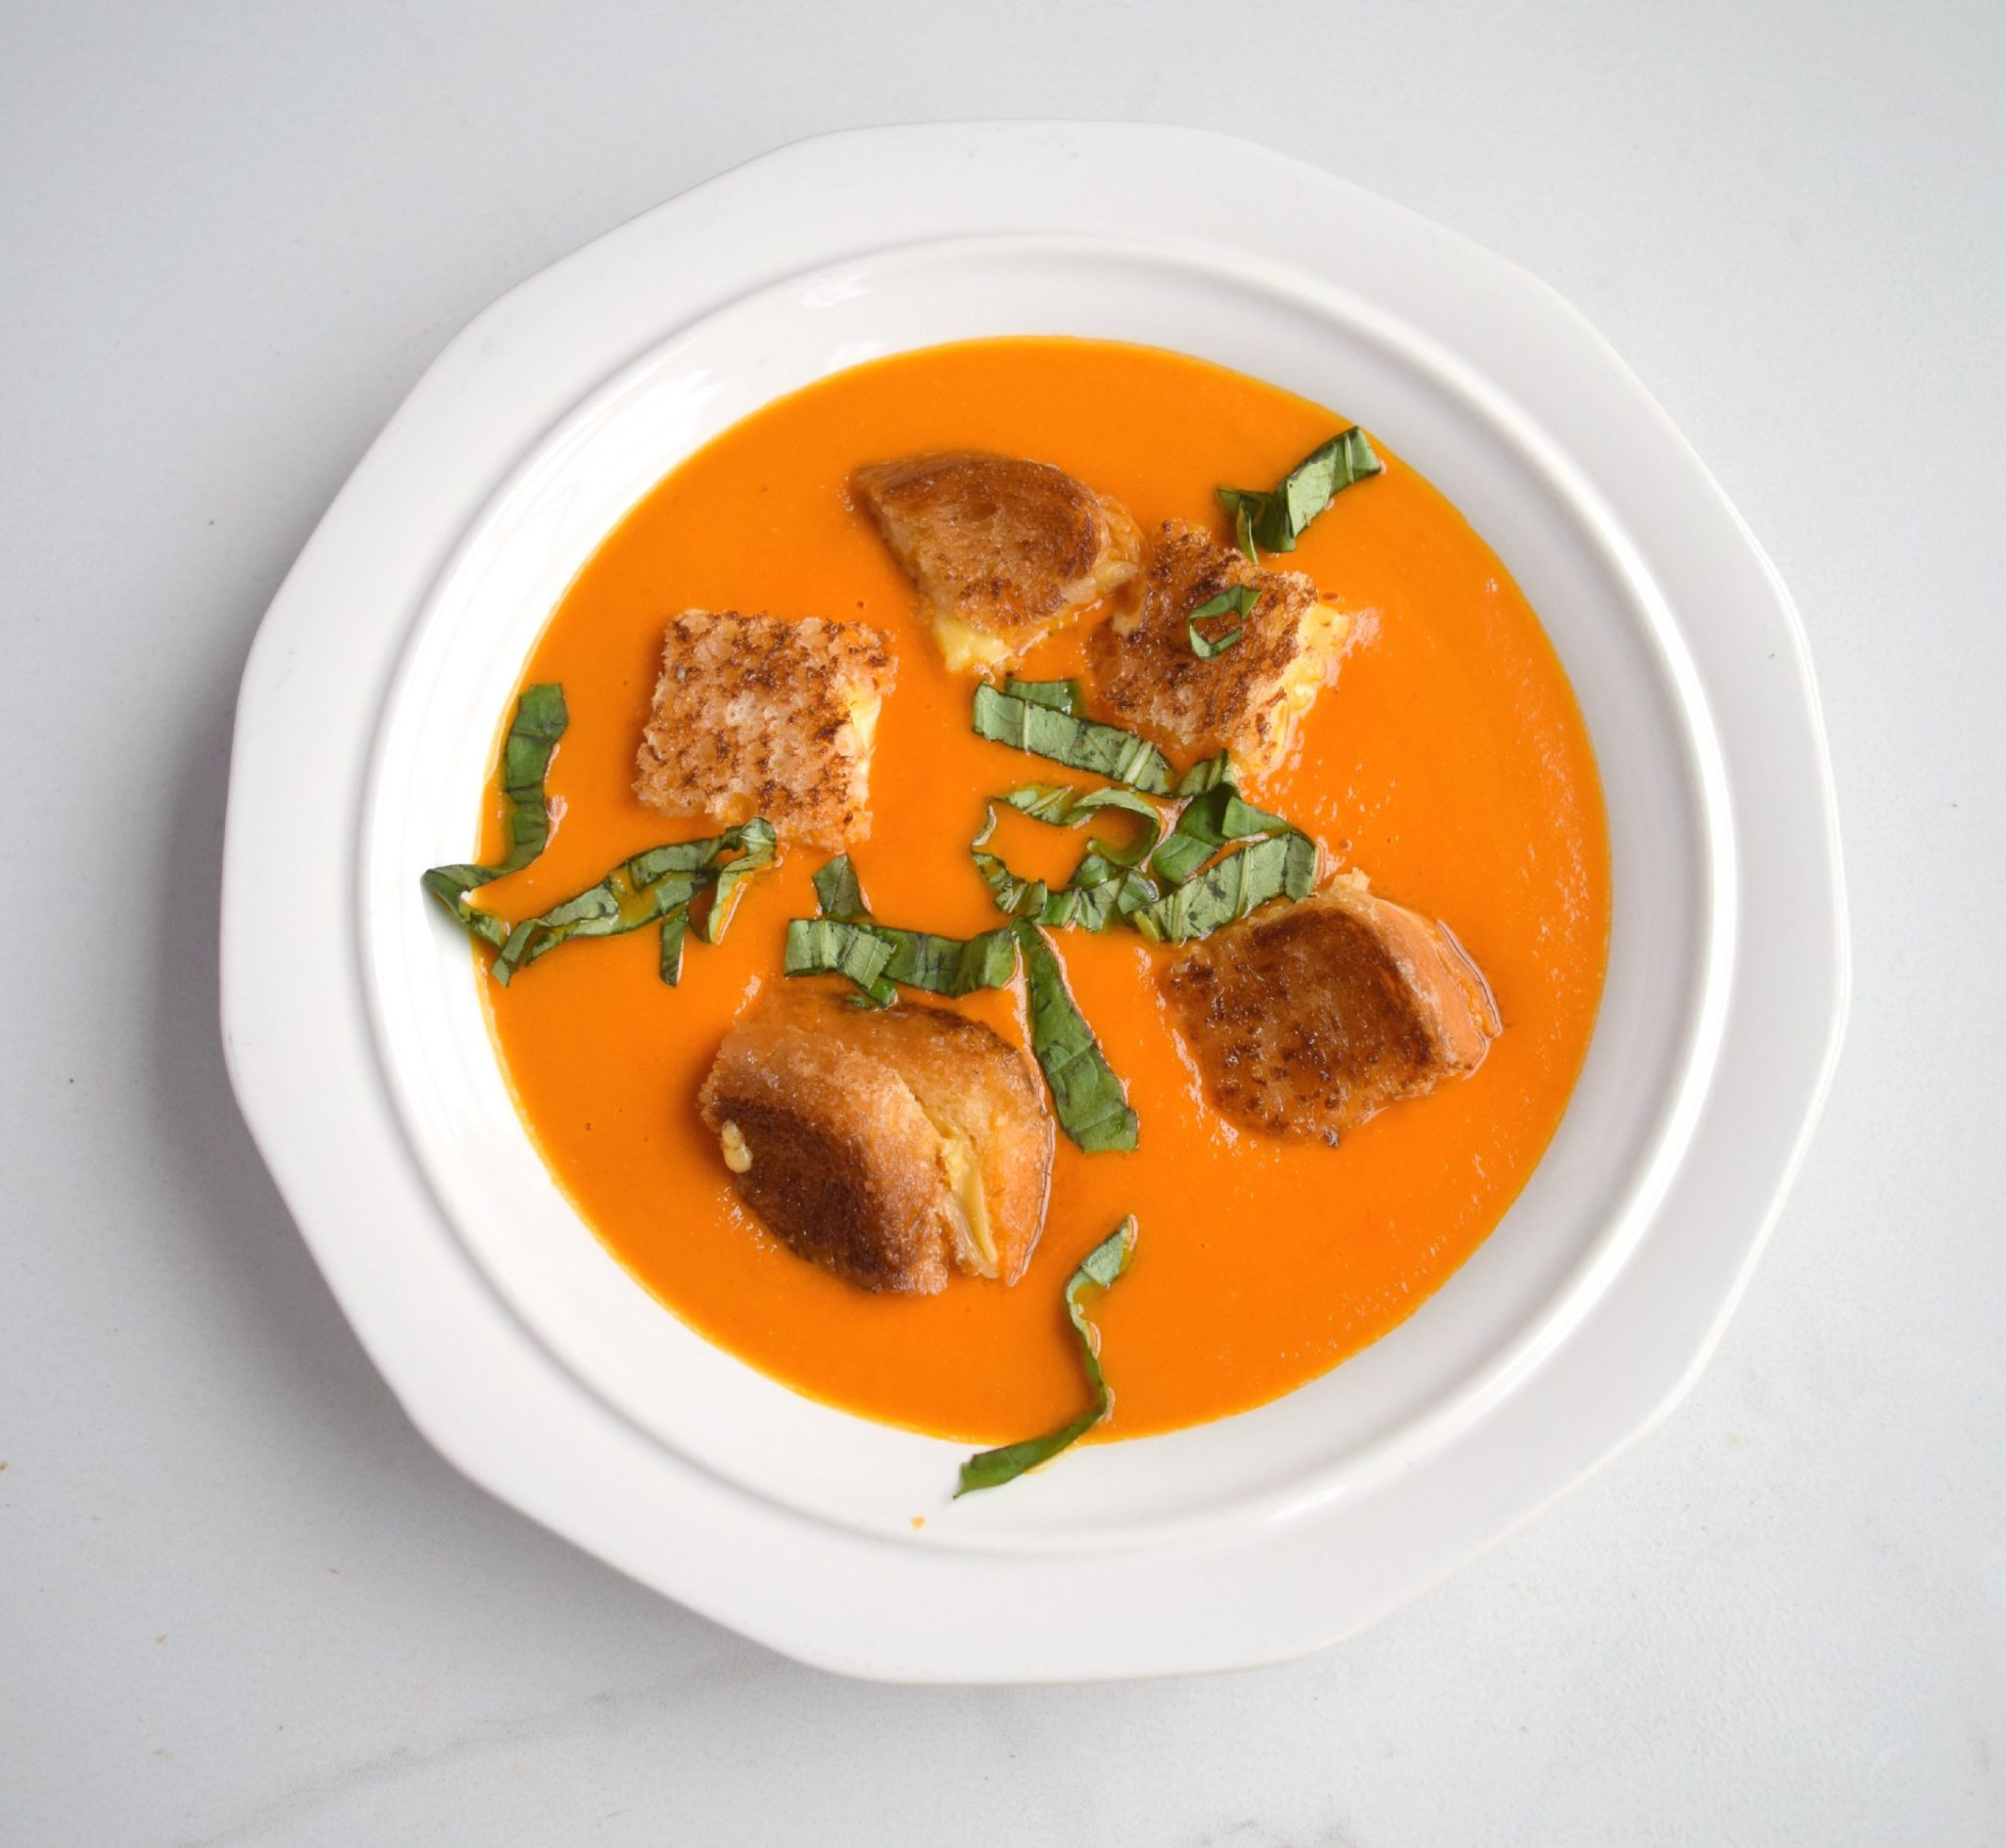 Roasted Tomato and Mascarpone Soup with Grilled Cheese Croutons